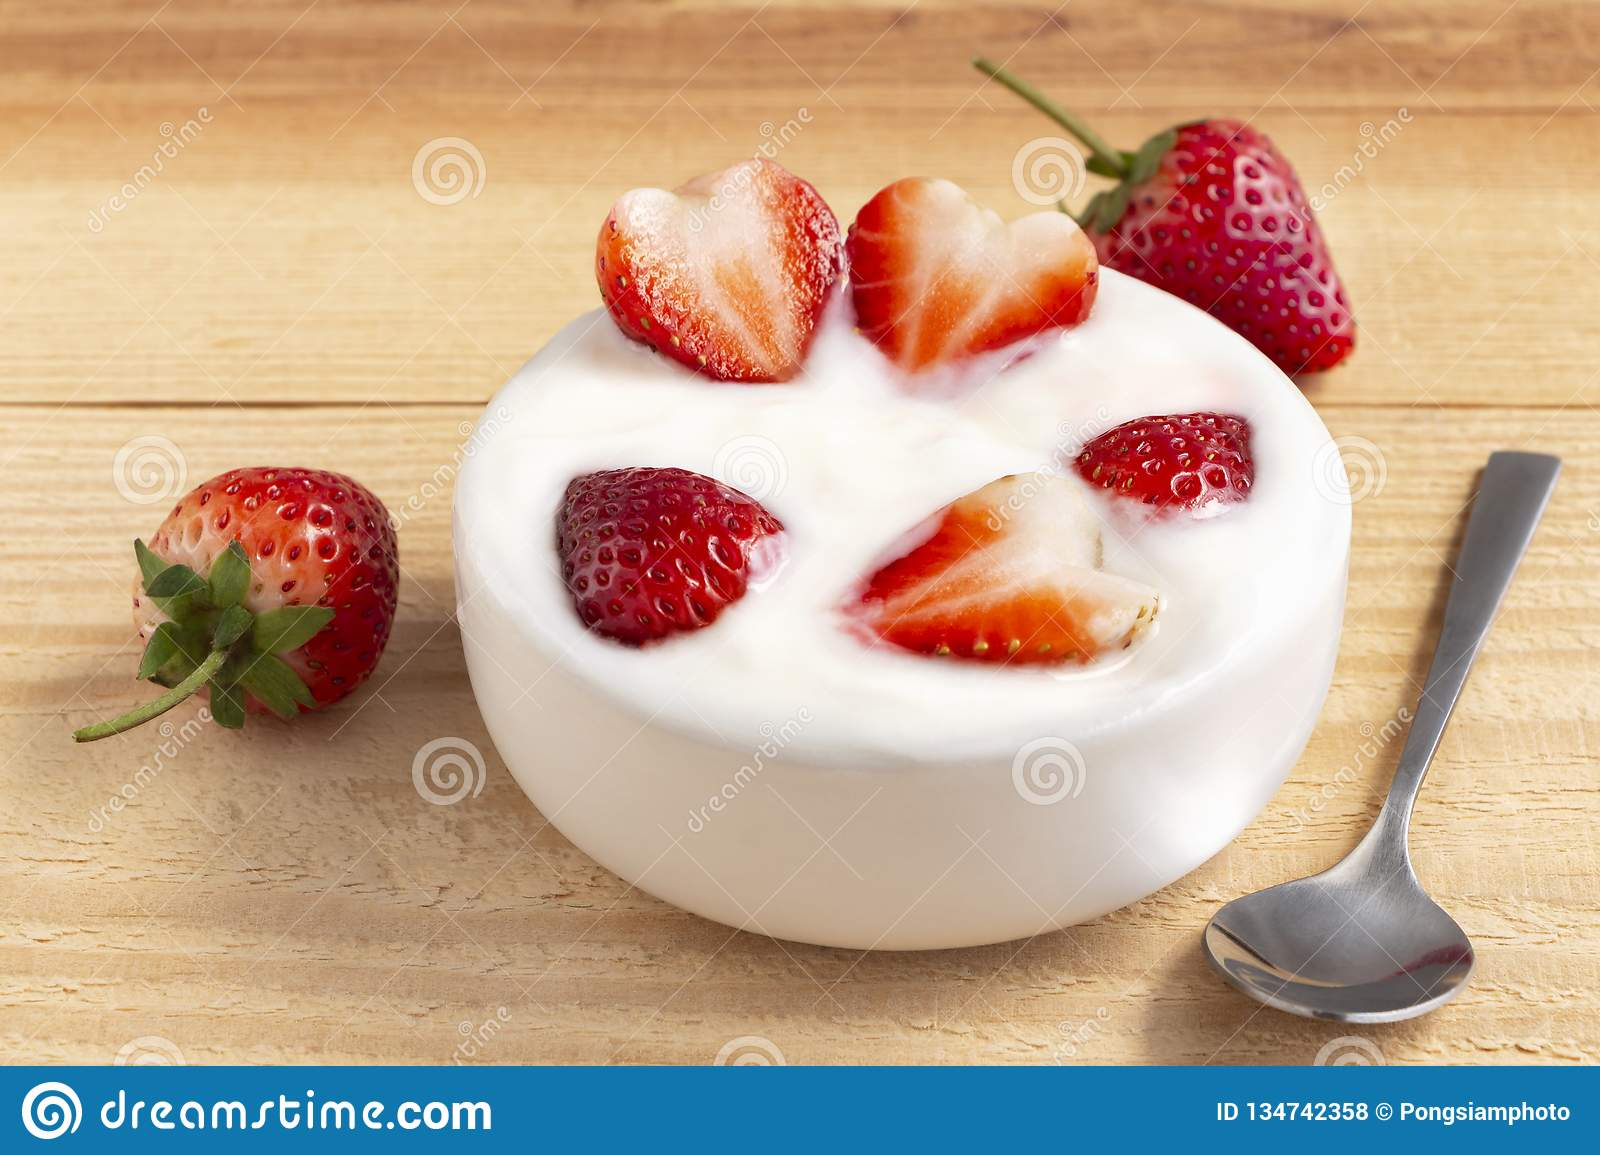 Bowl of yogurt and red fruit strawberry on the wood table. Yogurt made from milk fermented by added bacteria, often sweetened and